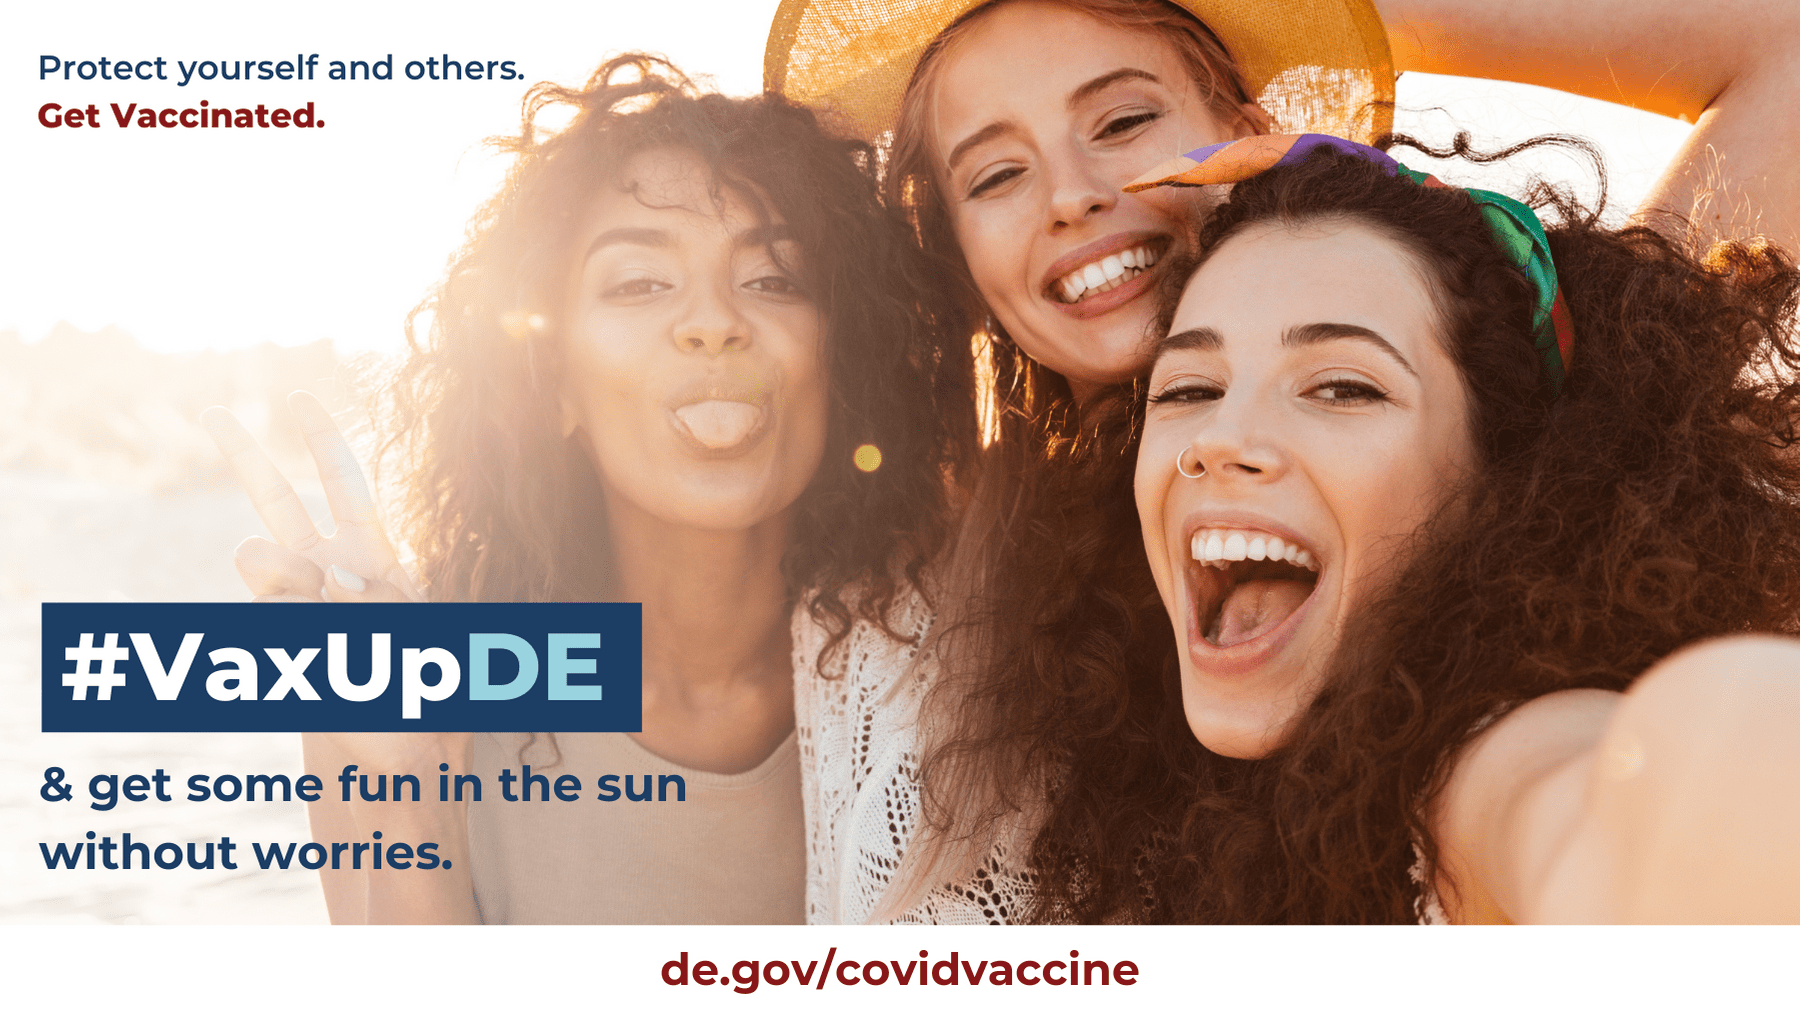 Protect yourself and others. Get Vaccinated. VaxUpDE and get some fun in the sun without worries. 3 girls smiling and having fun on the beach.